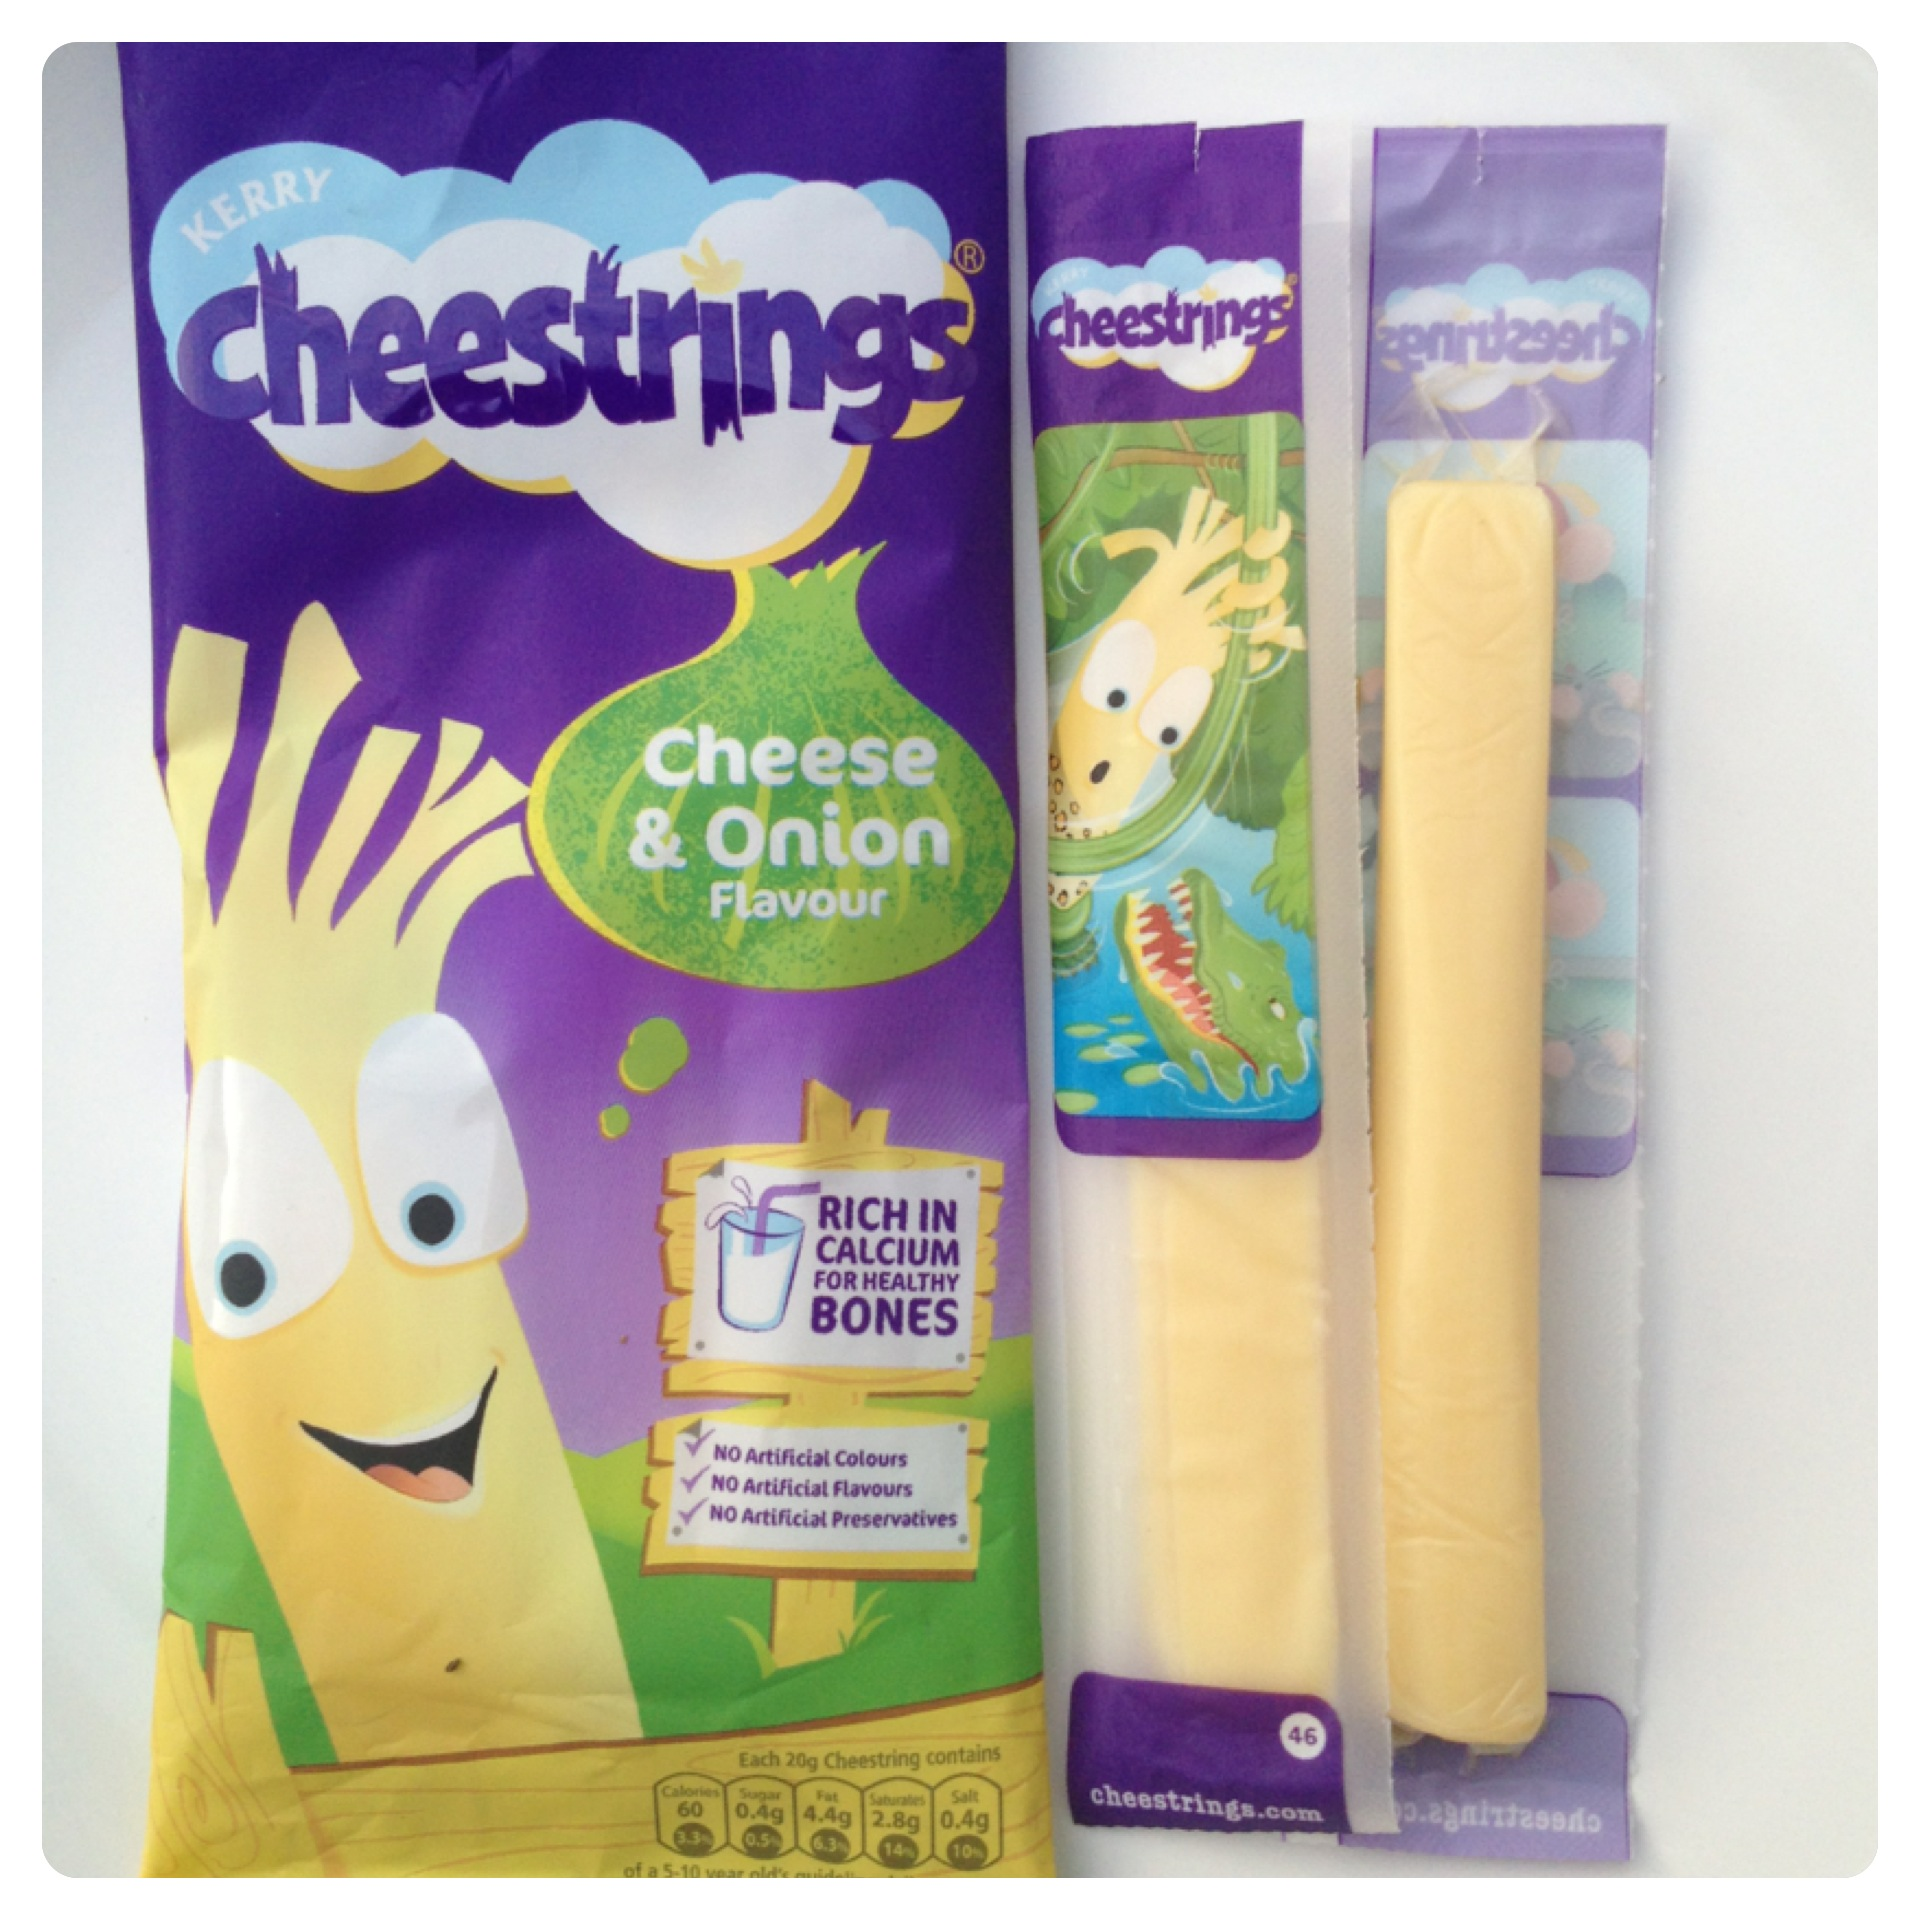 Cheestrings Cheese & Onion